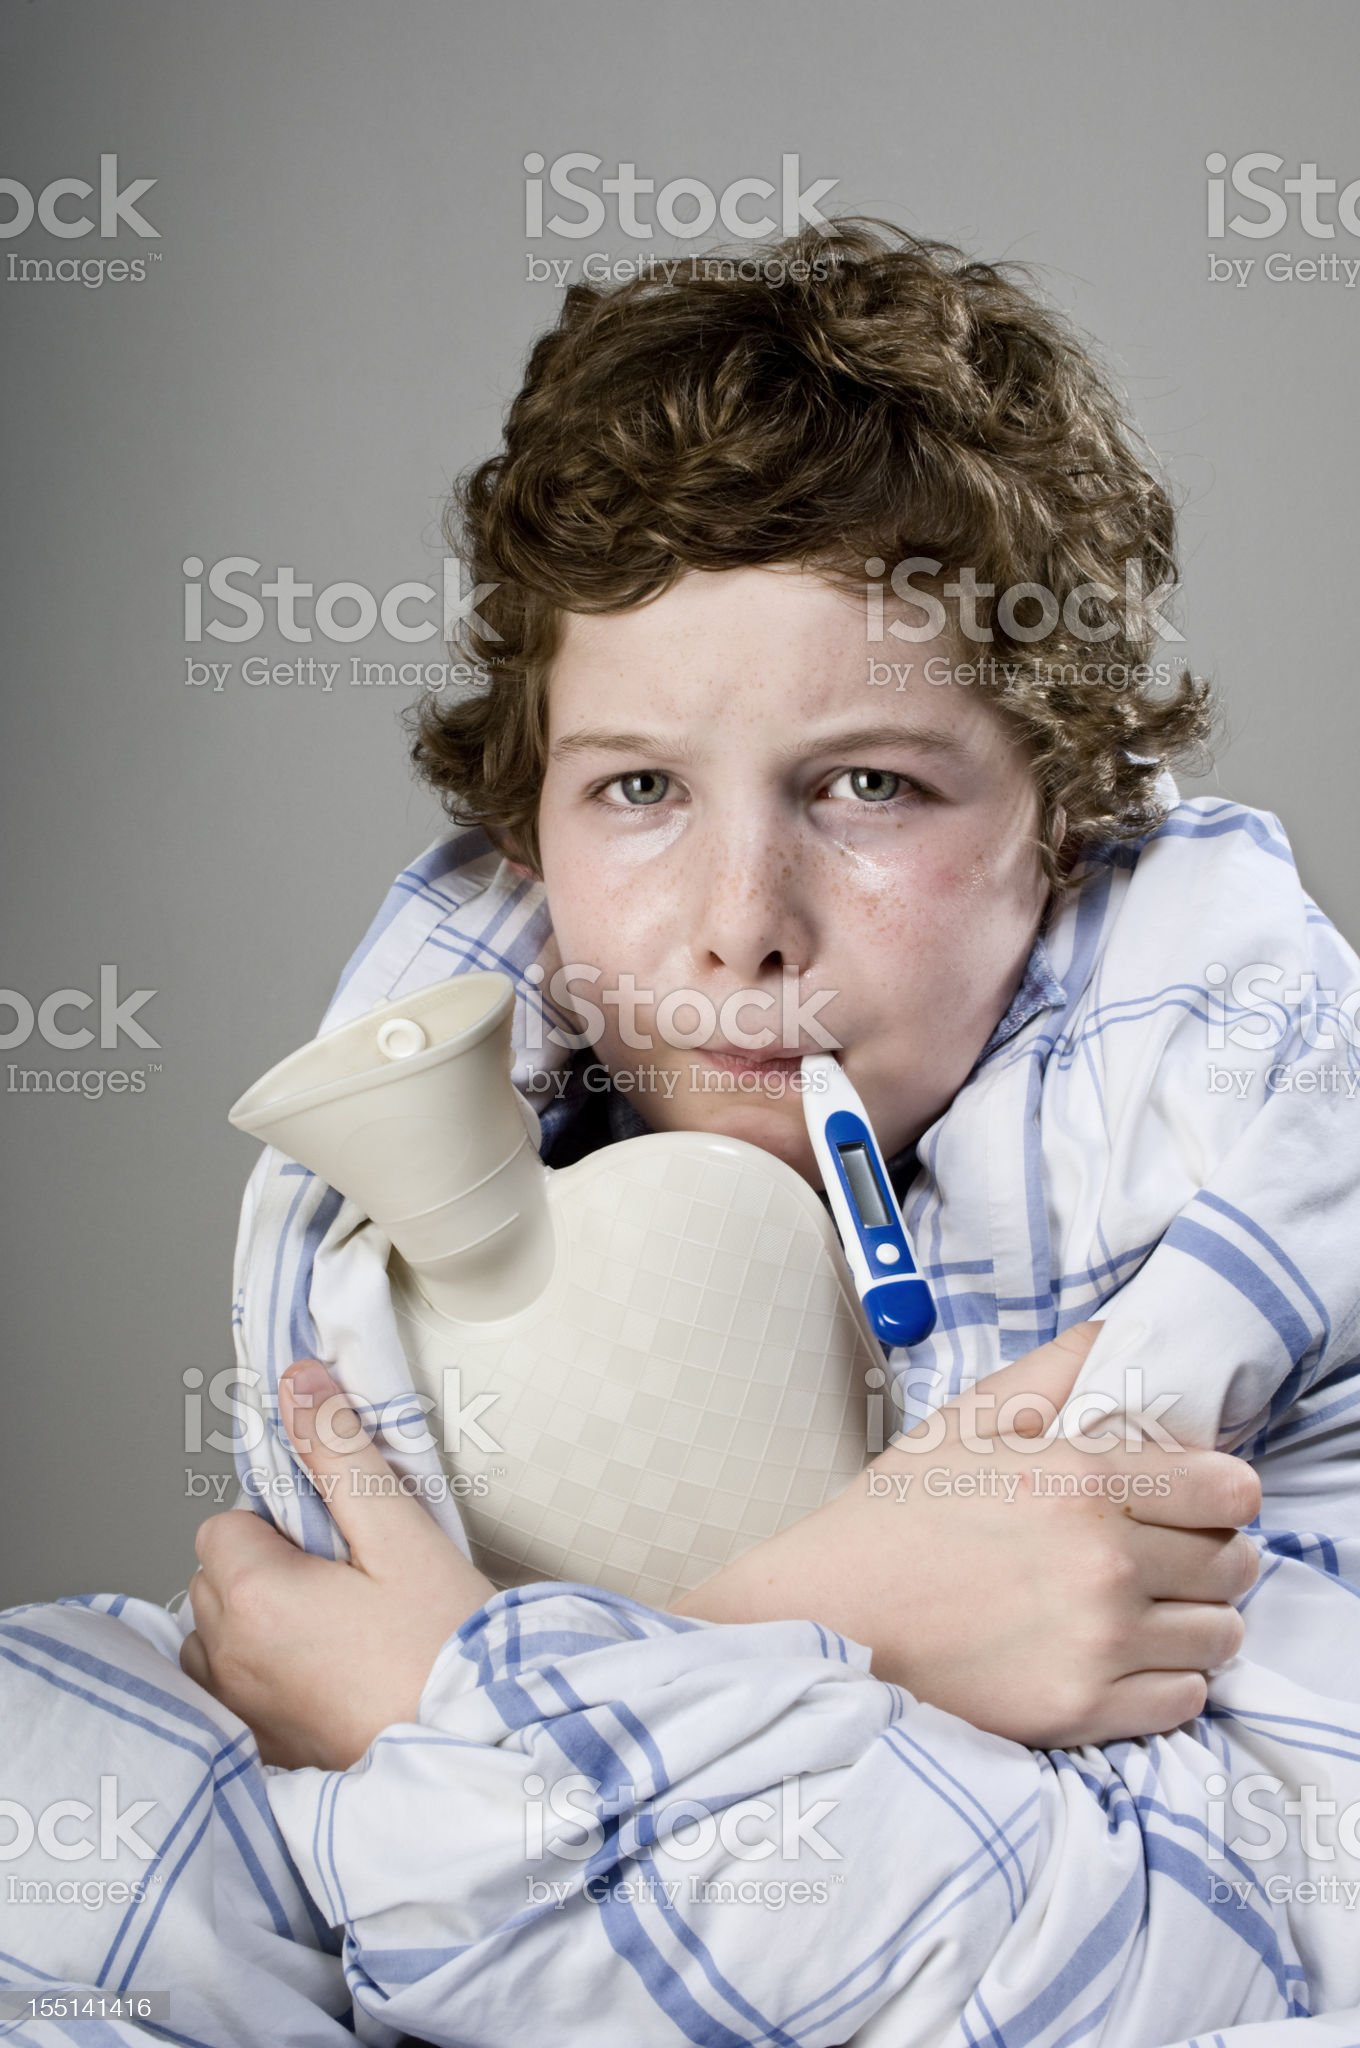 Sick Child With Thermometer Holding a Hot Water Bottle royalty-free stock photo